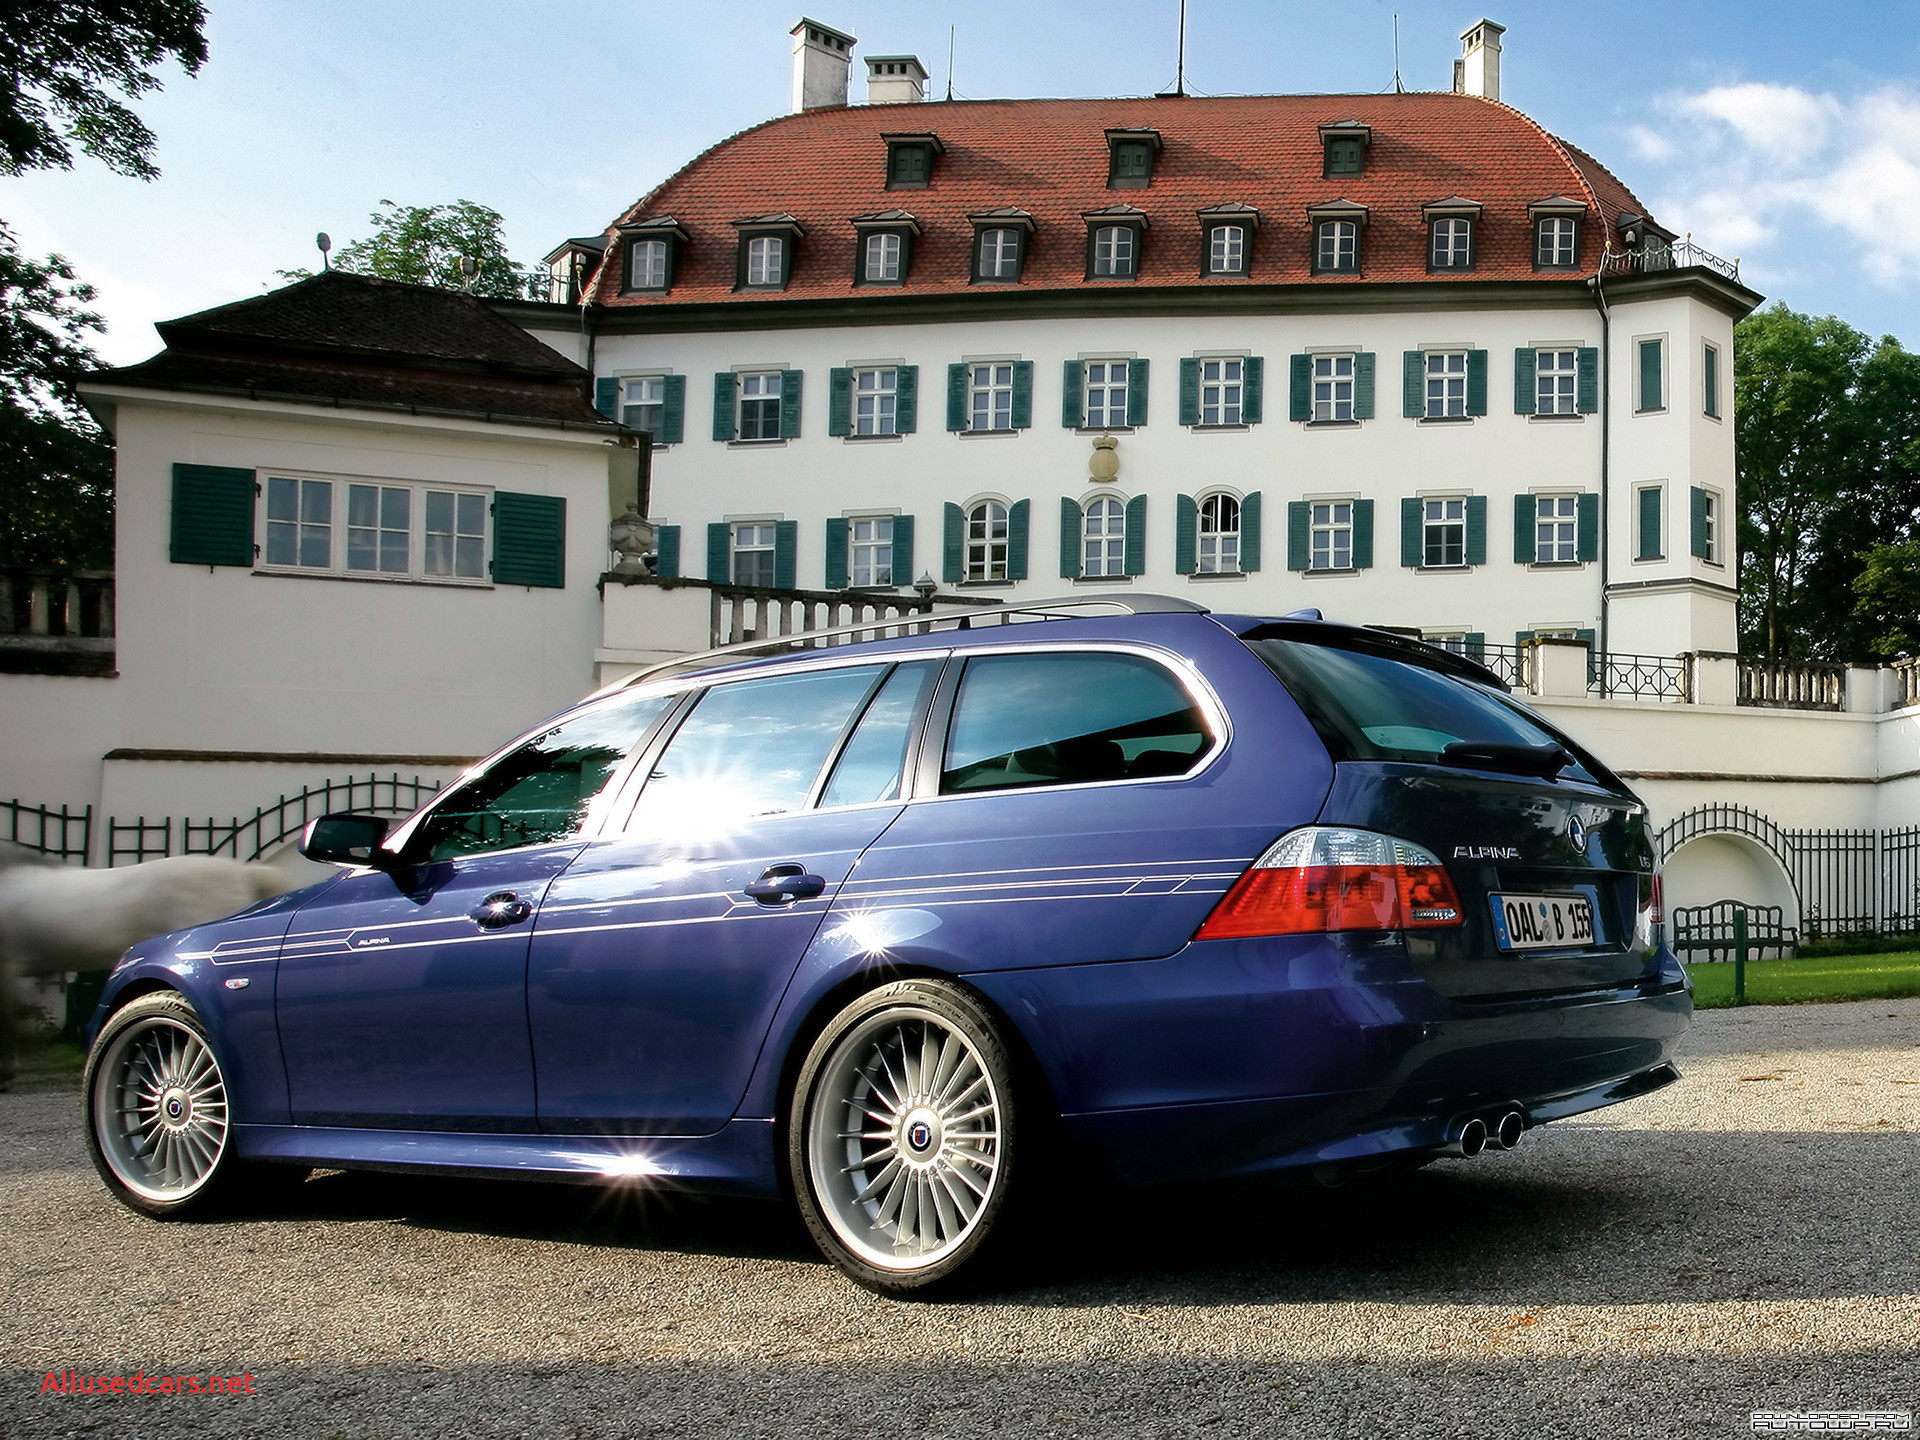 Bmw 1m for Sale New Cielreveur 21 Awesome Bmw X5 5 0